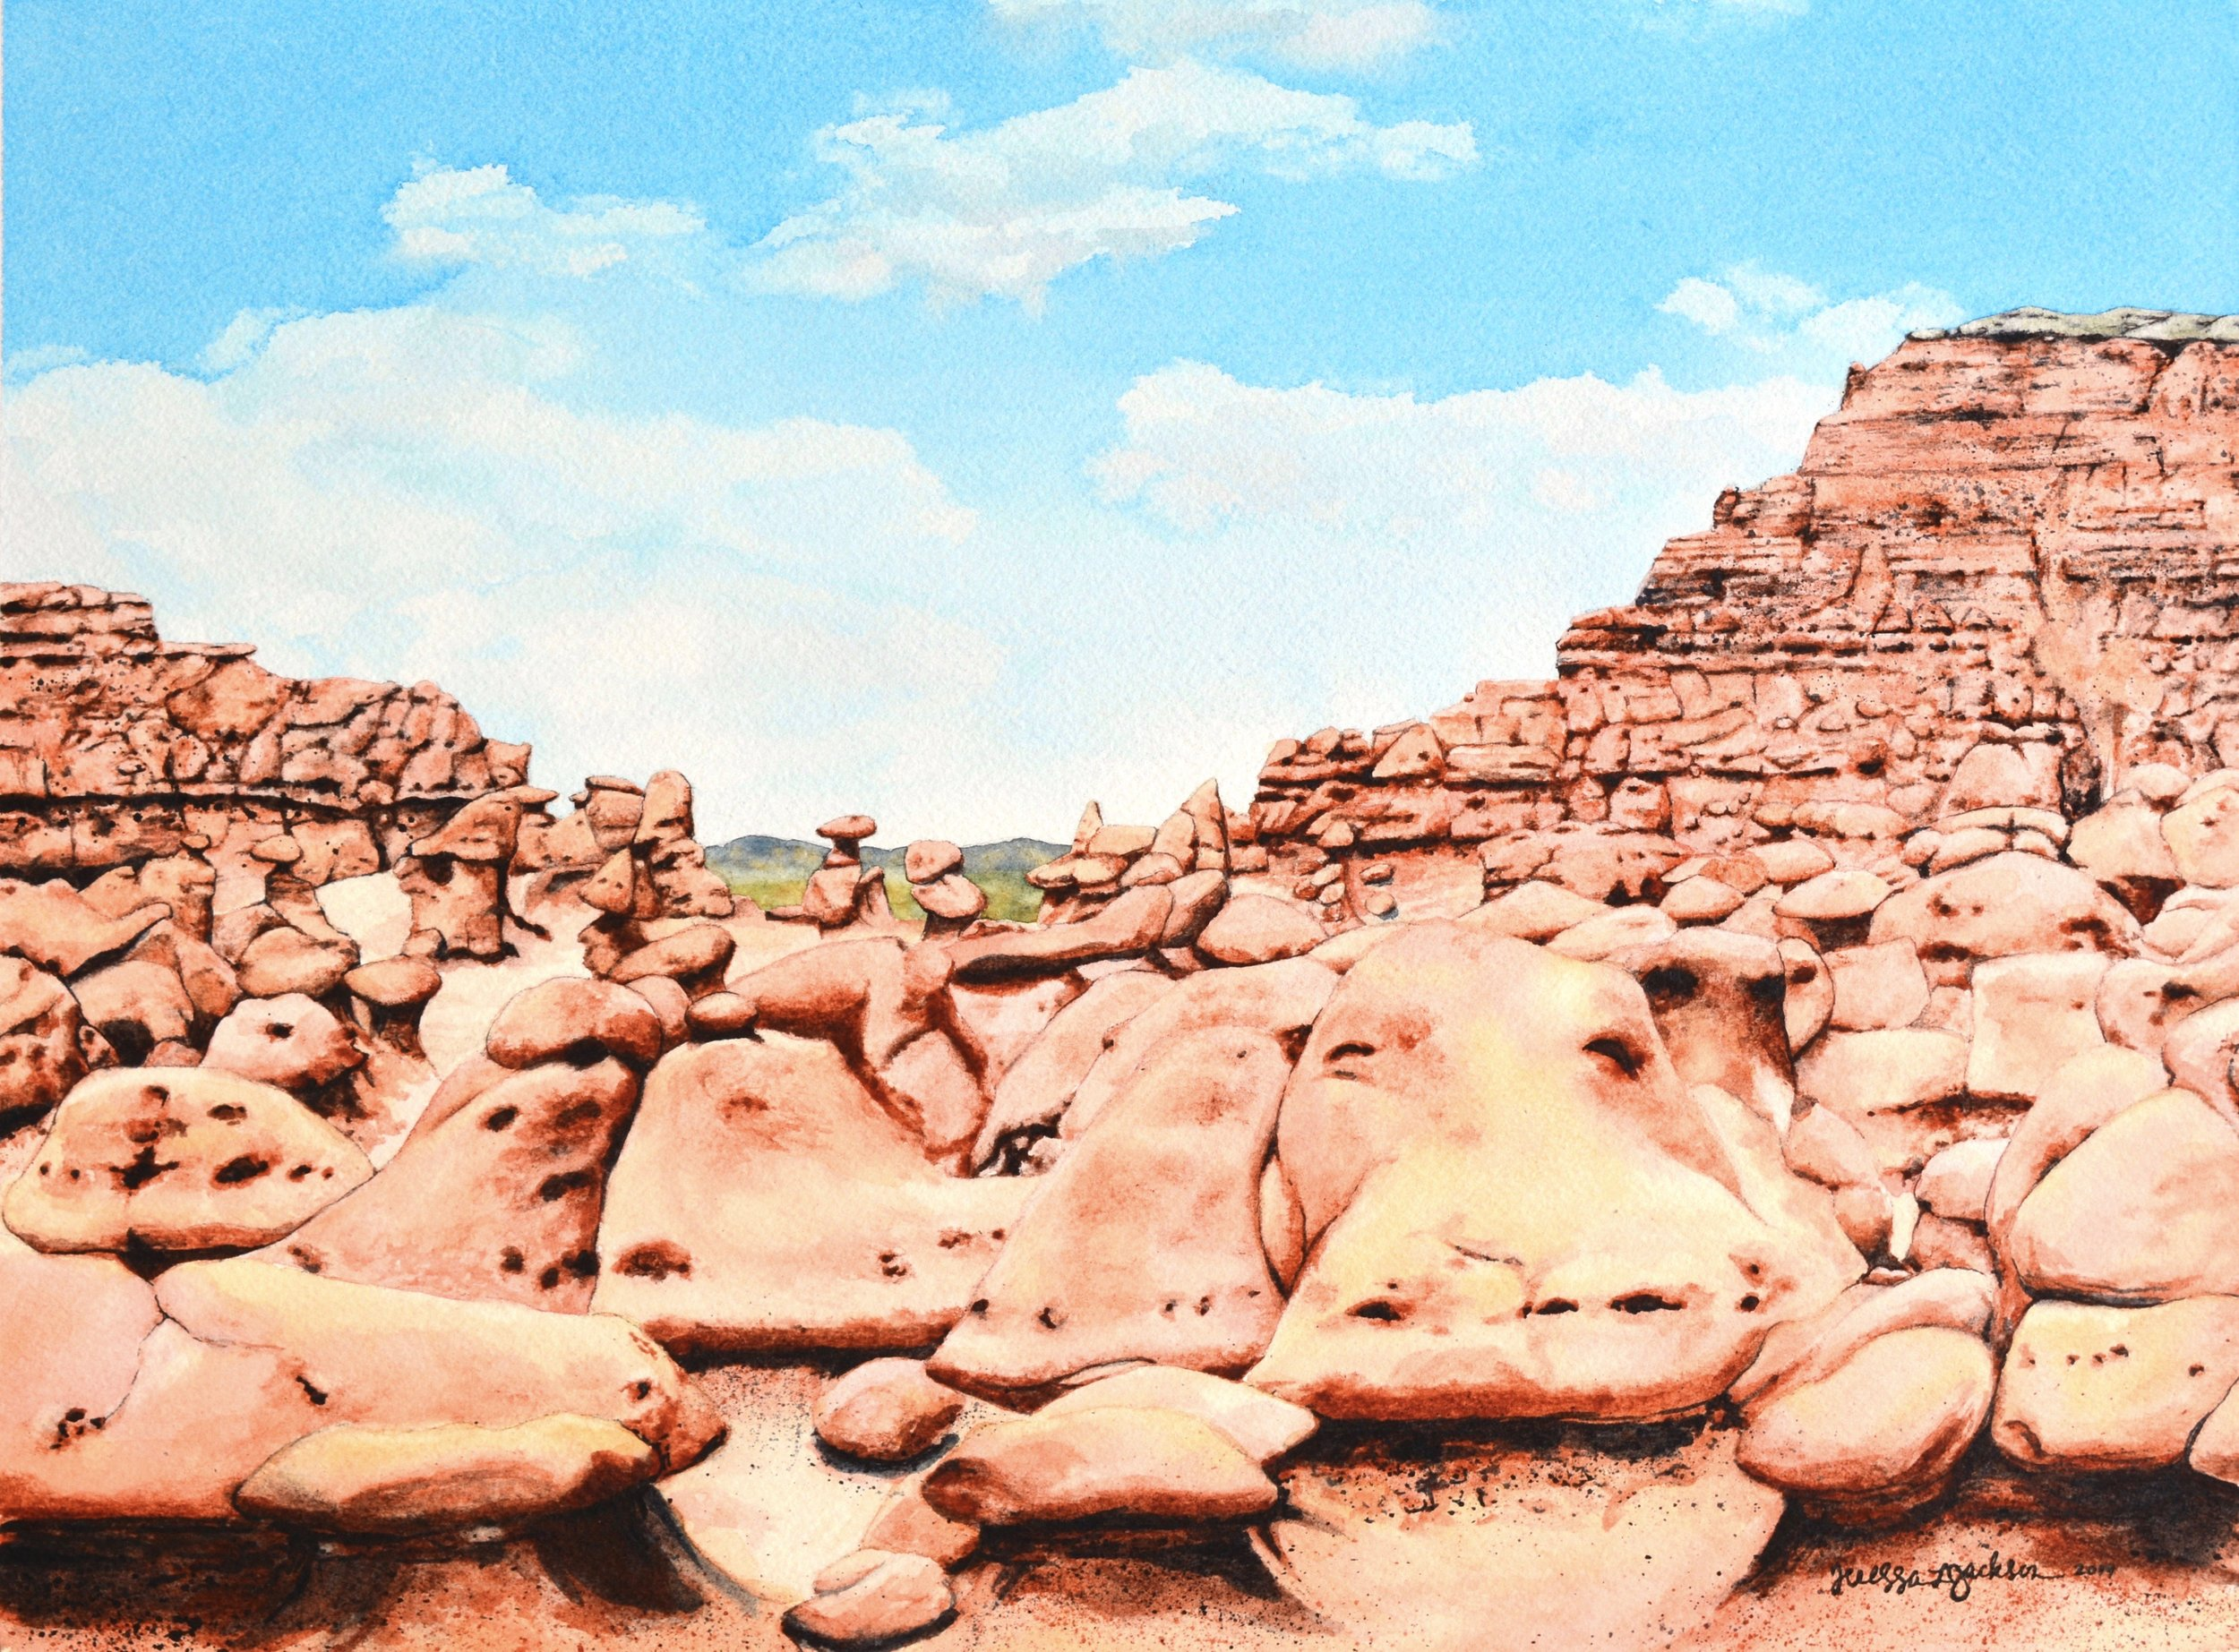 """Return to Goblin Valley"" 12x16"" watercolor on 140 lb. watercolor paper Available for purchase at  Raices Taller 222 Art Gallery & Workshop  until 9/7/19."